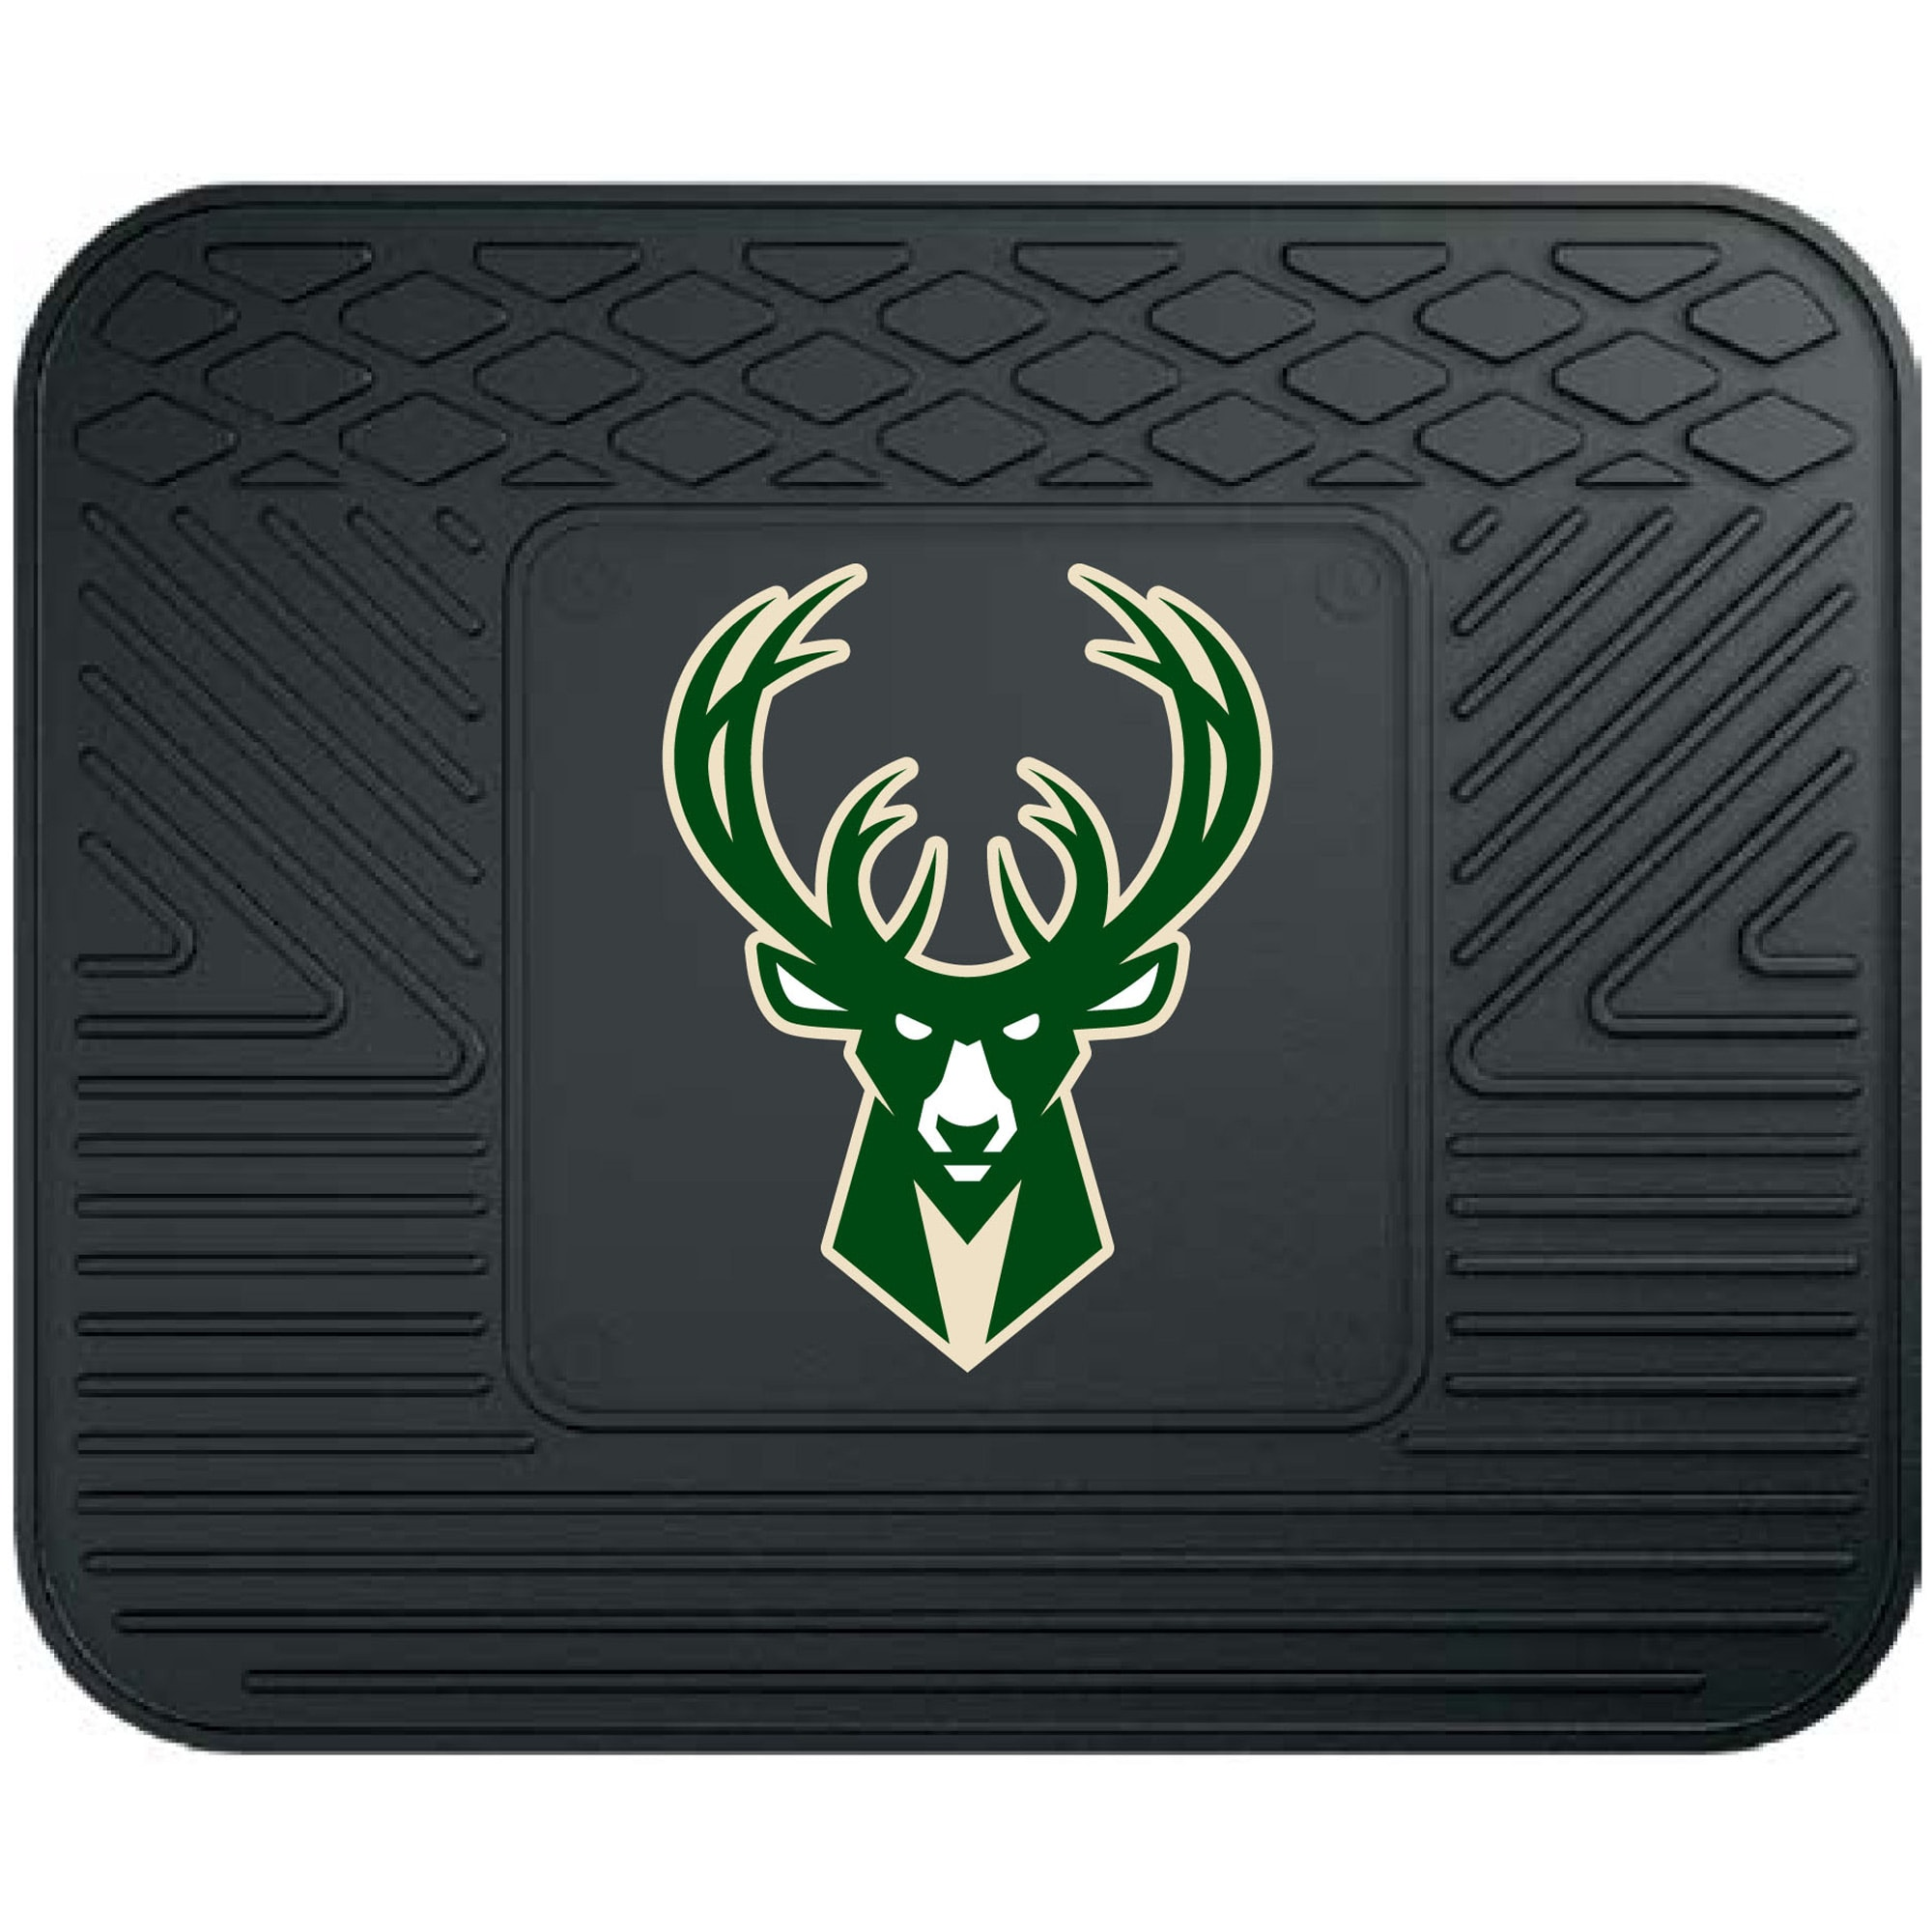 "Milwaukee Bucks 17"" x 14"" Utility Mat"